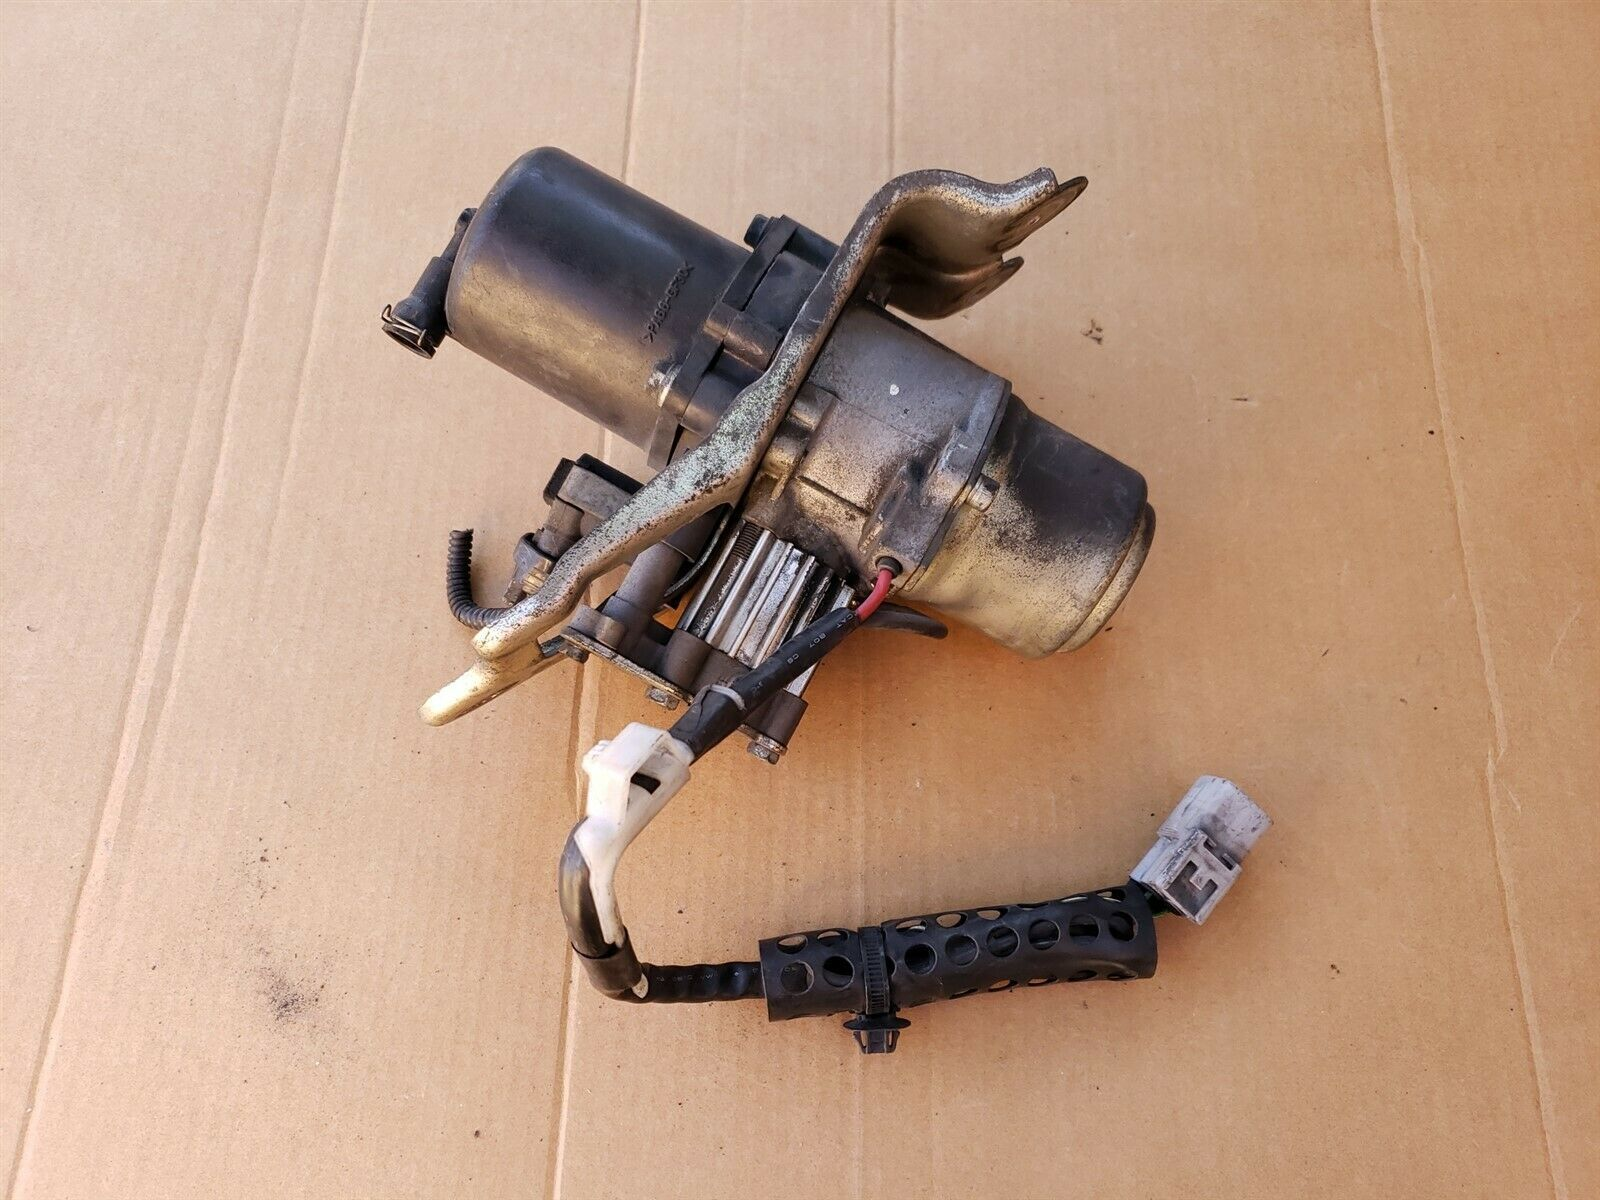 04-07 Toyota Sequoia Air Suspension Compressor Ride Height Pump,